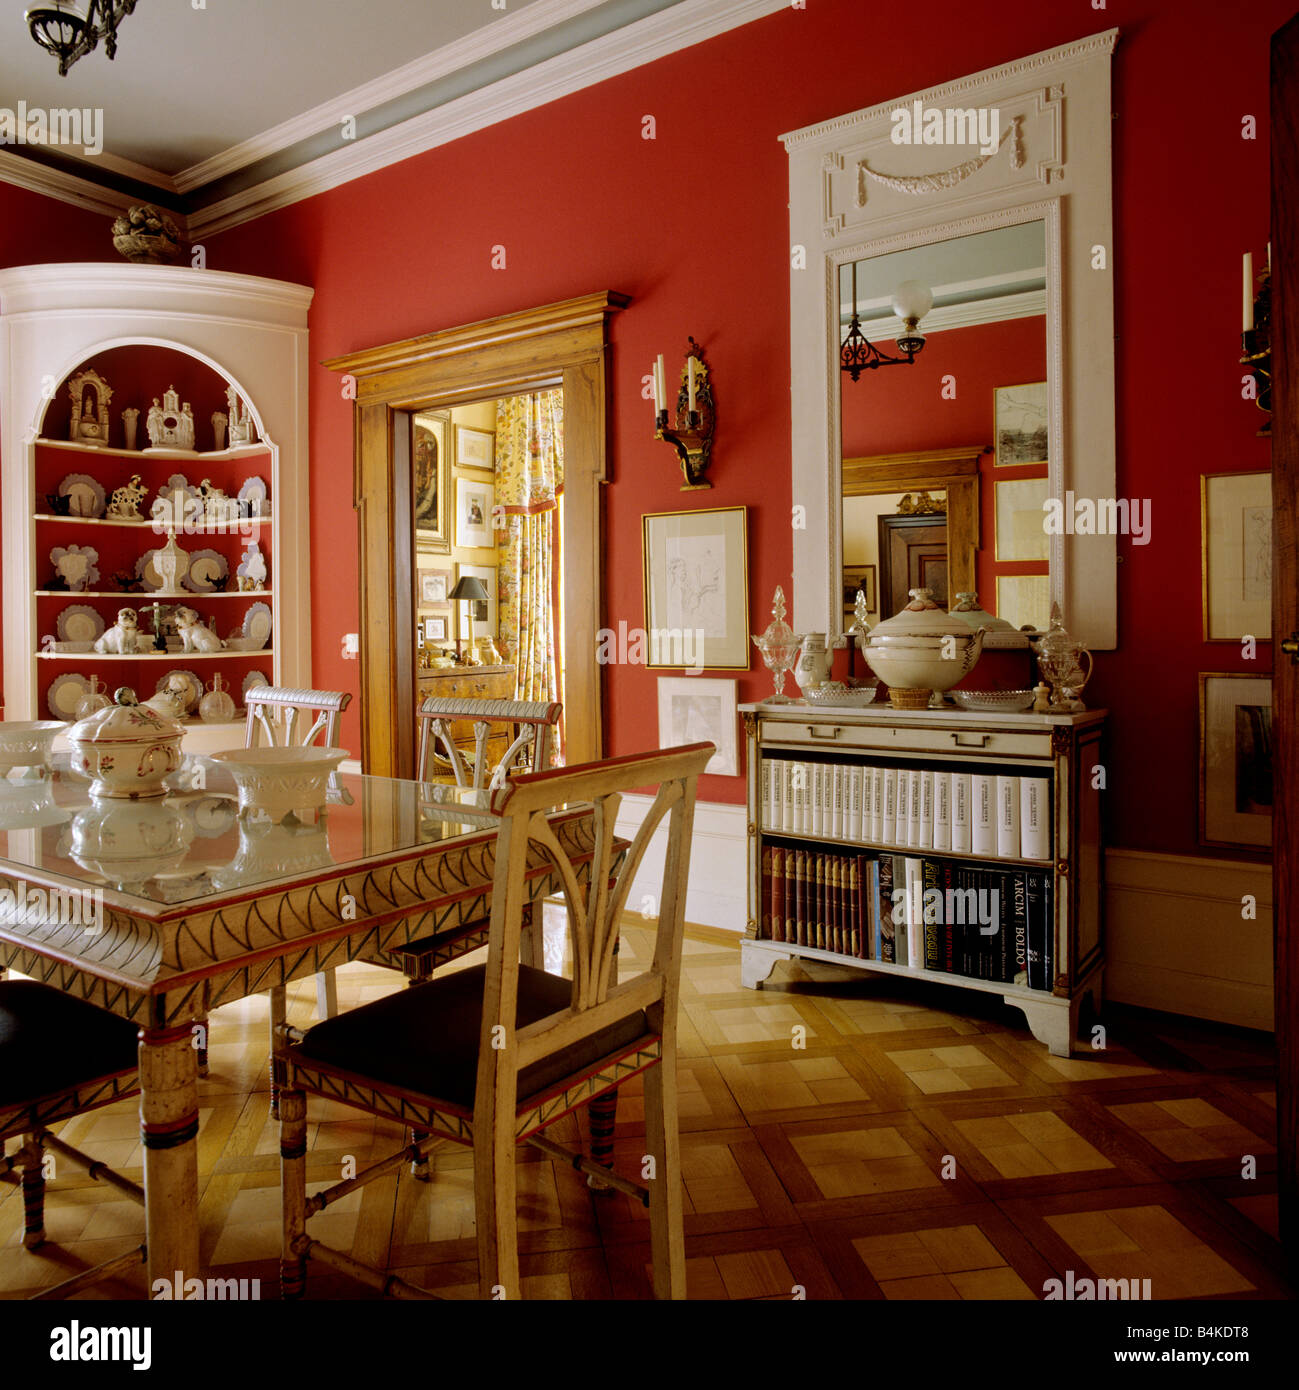 Red Dining Room With Parquet Flooring